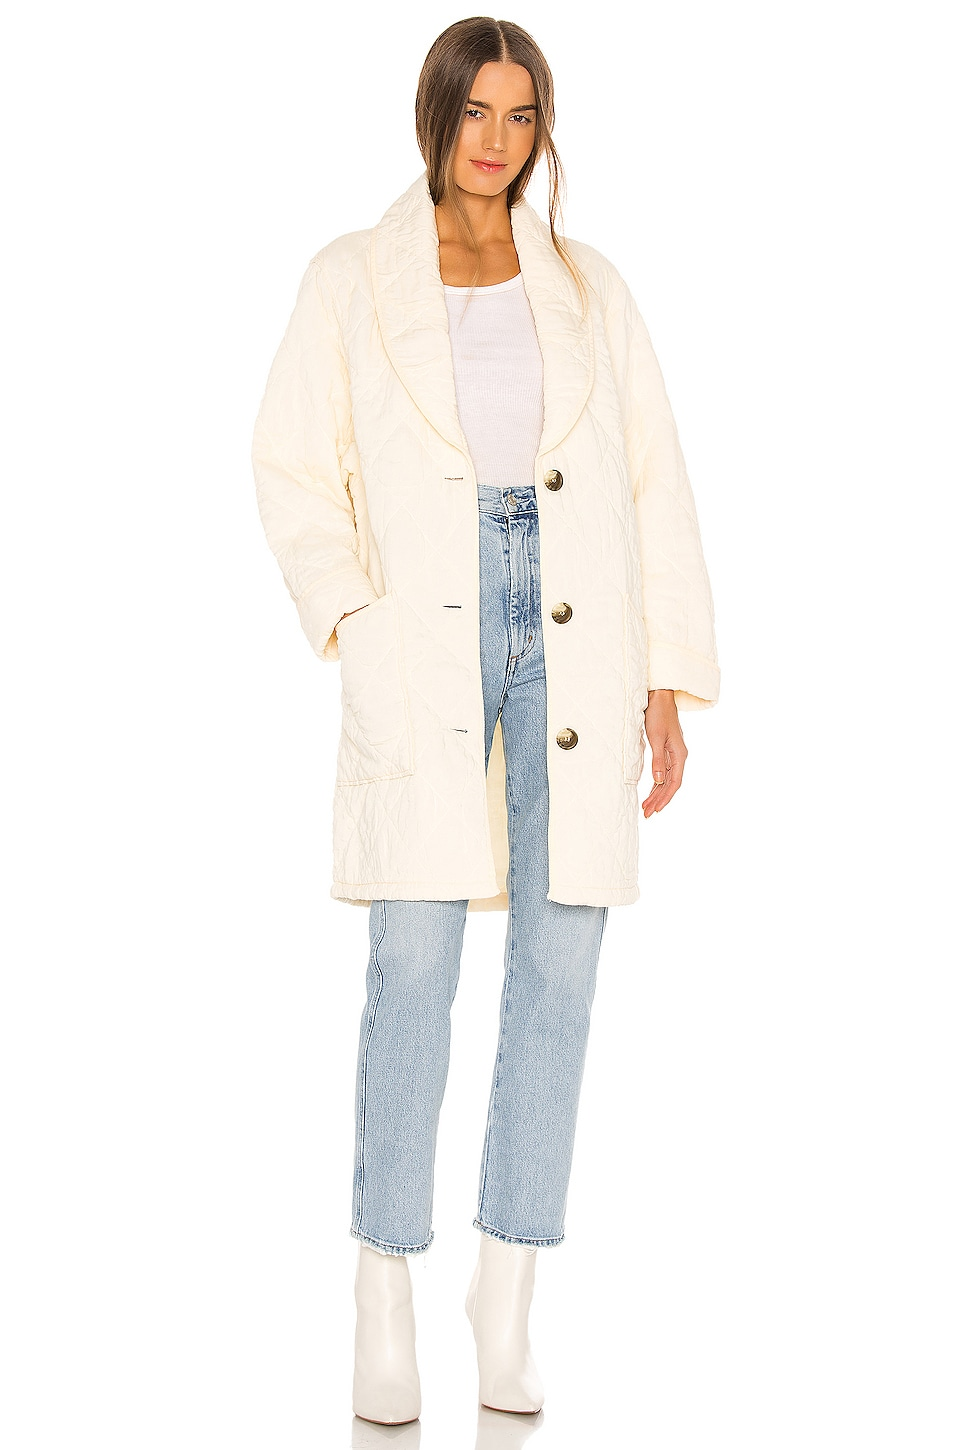 Free People Happy Day Dreamer Jacket in Ivory